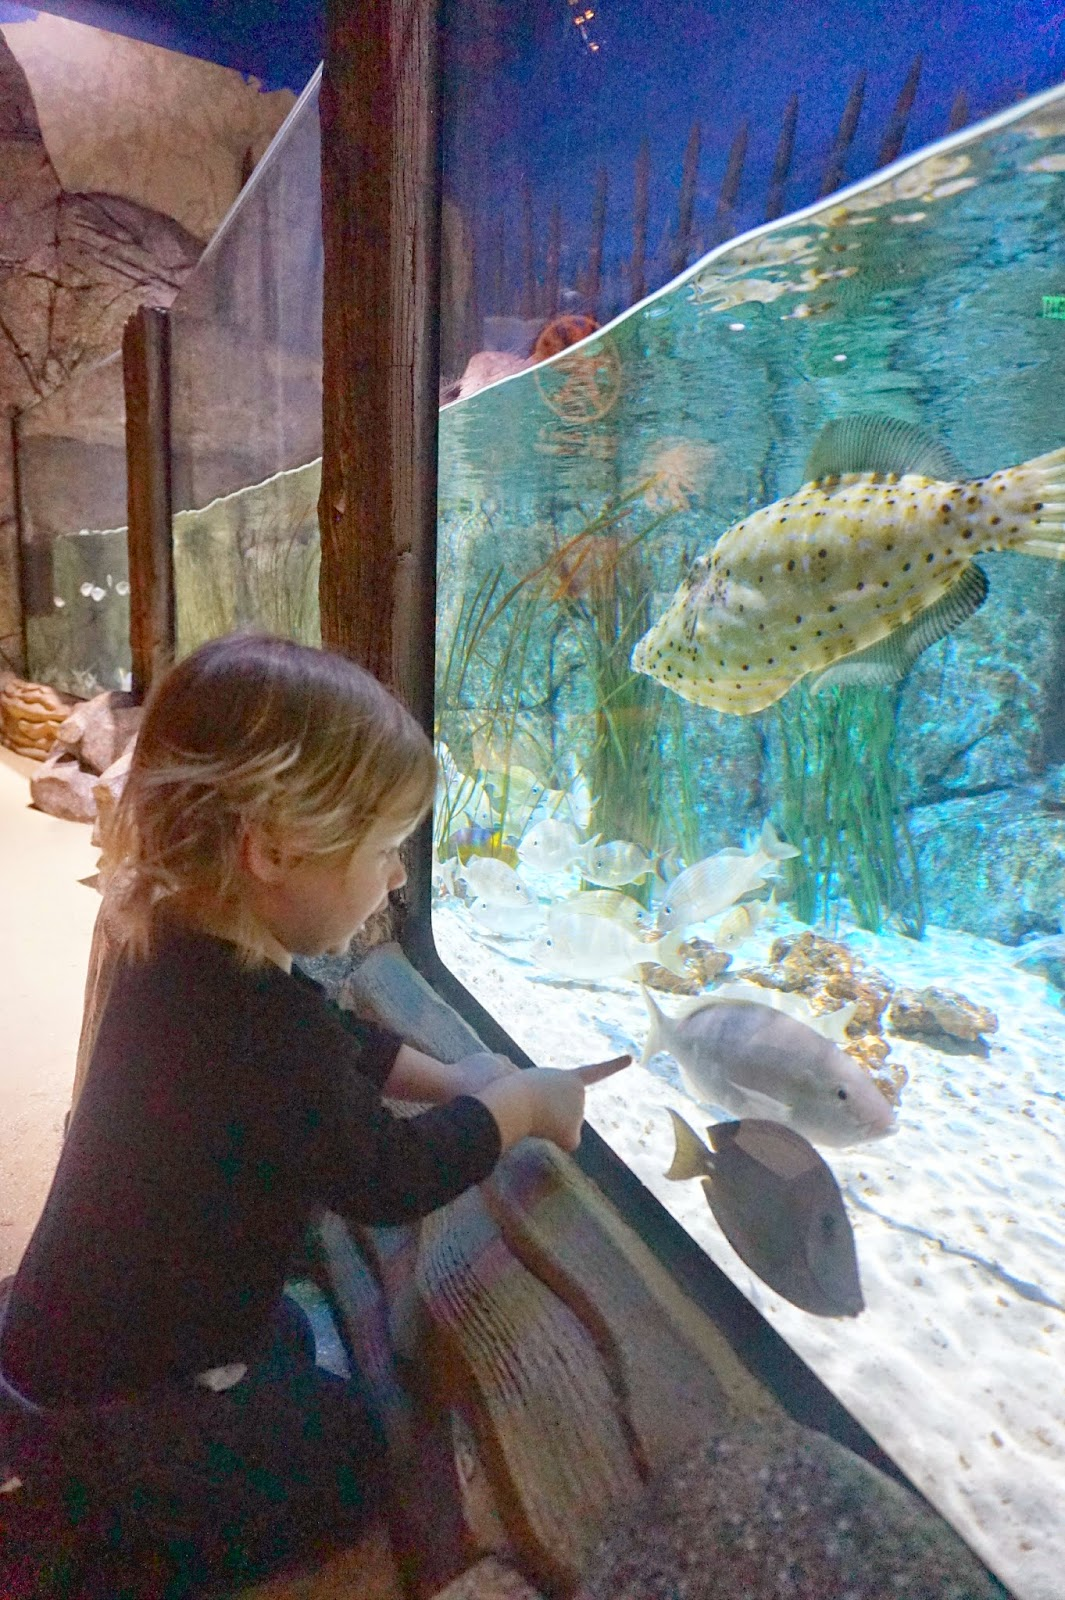 5 places for family fun in charlotte north carolina Concord mills mall aquarium